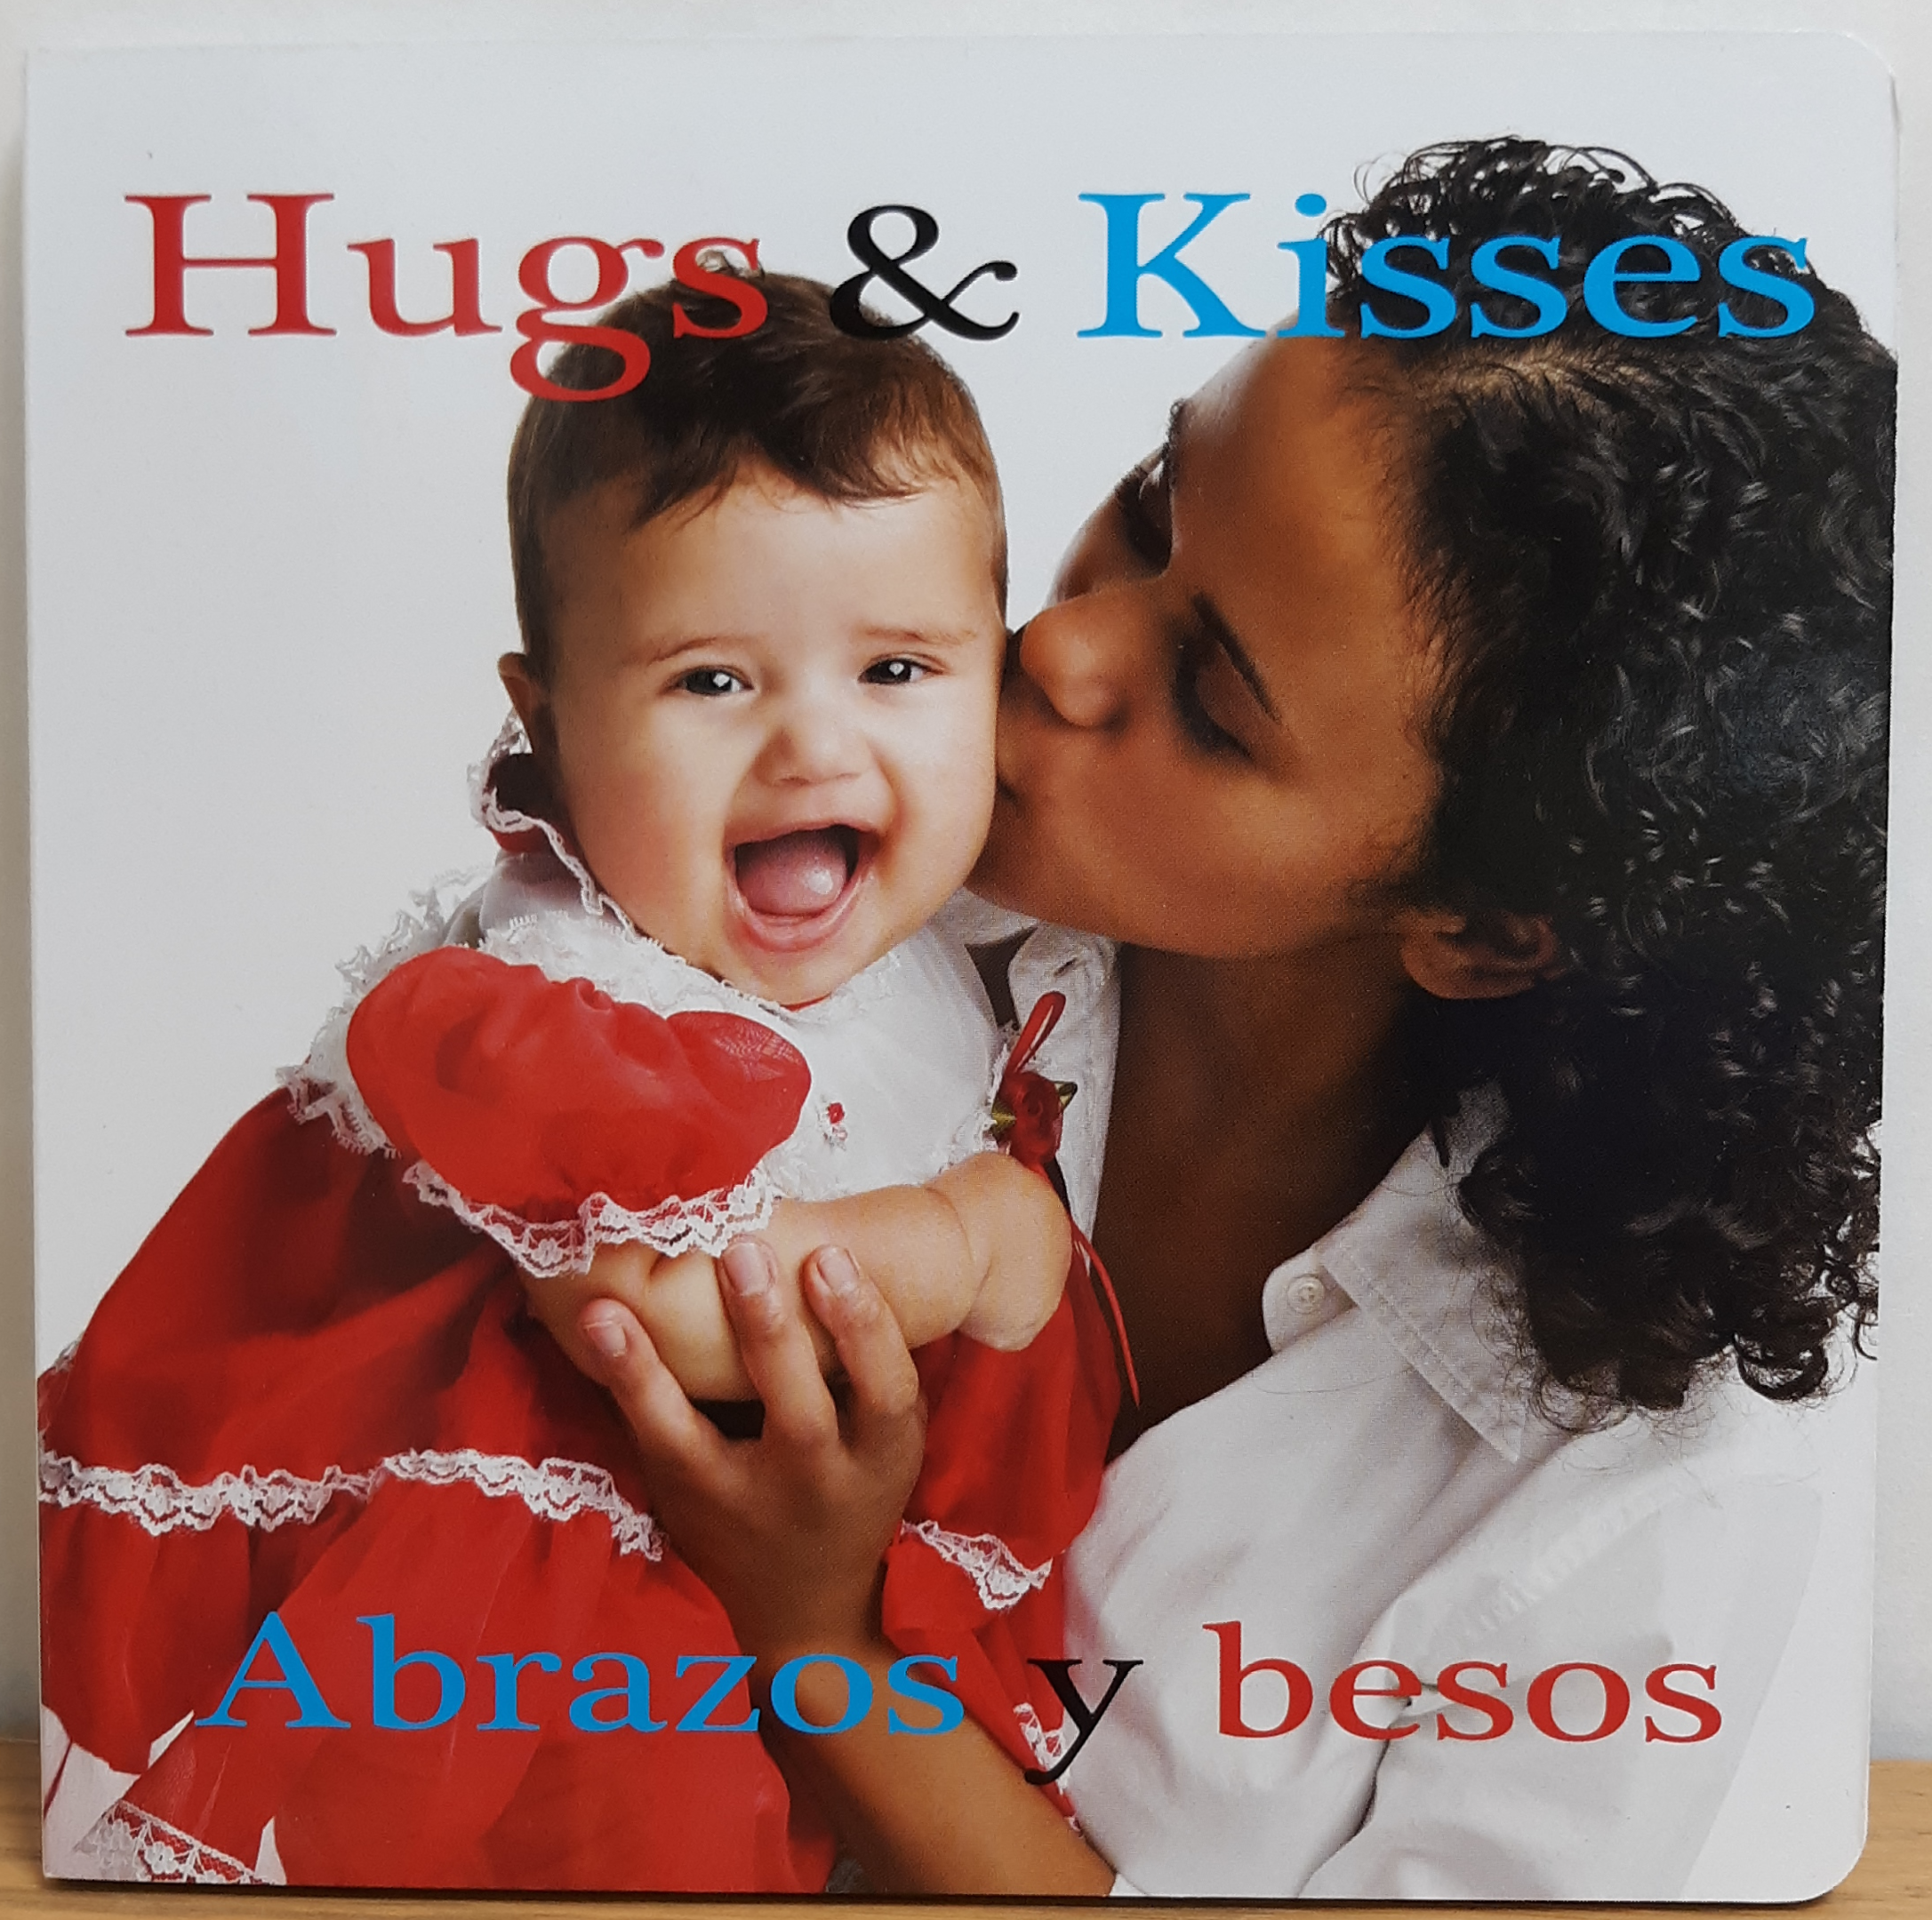 https://0201.nccdn.net/4_2/000/000/056/7dc/hugs-and-kisses.png